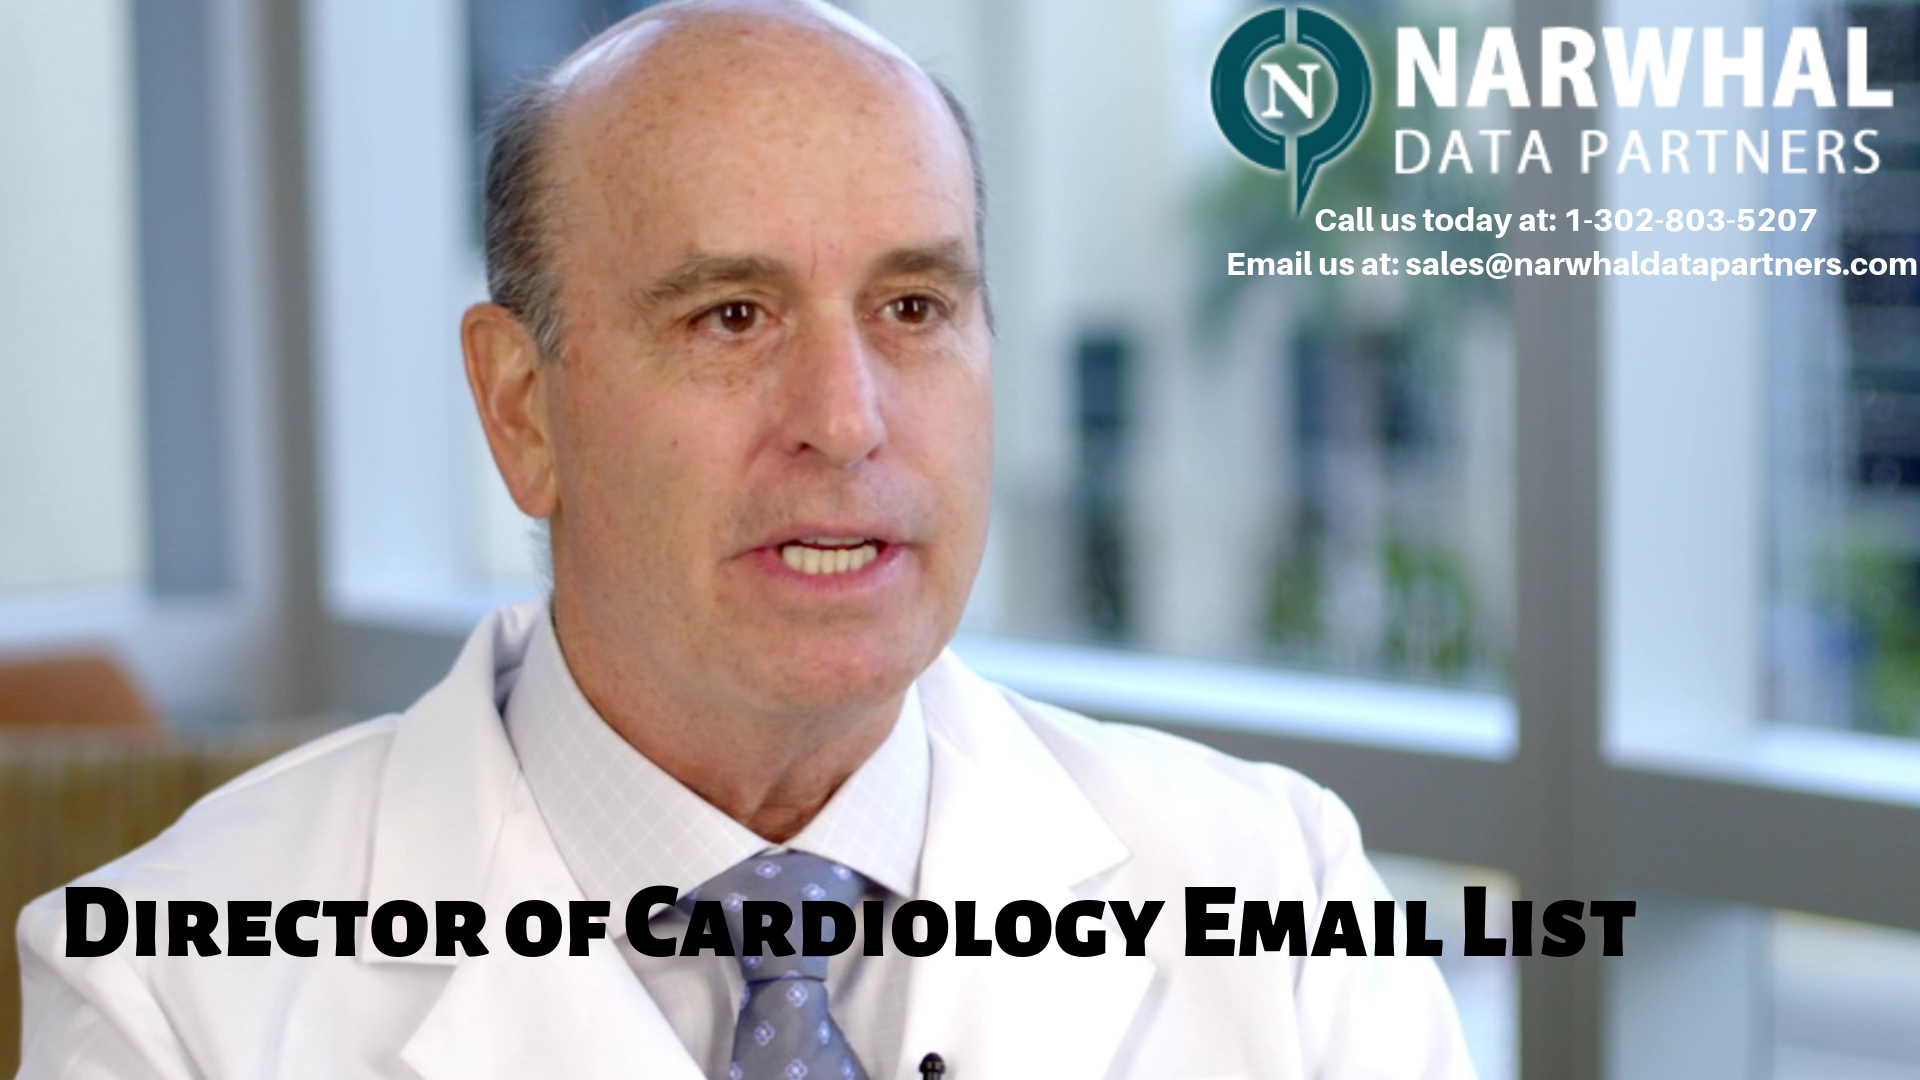 http://narwhaldatapartners.com/director-of-cardiology-email-list.html